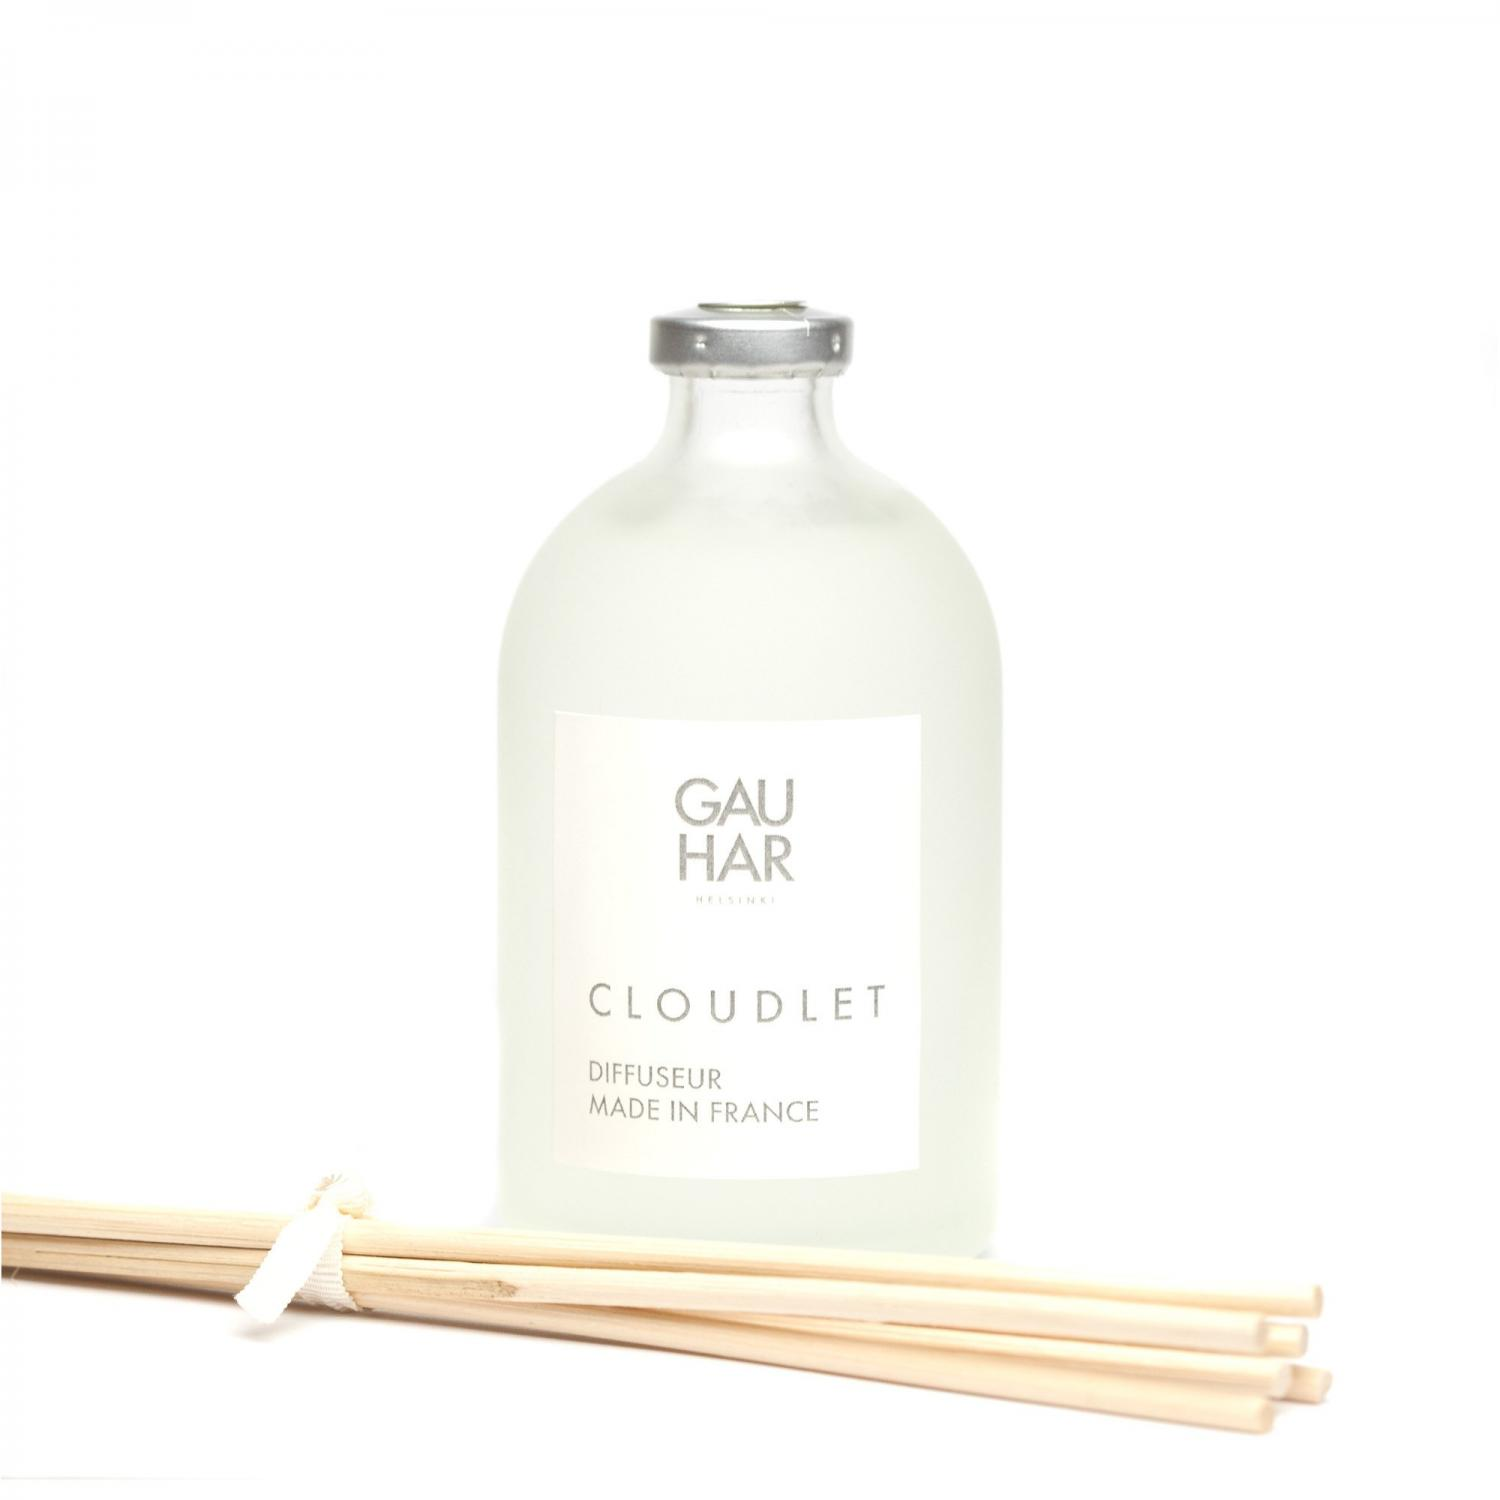 DIFFUSER CLOUDLET